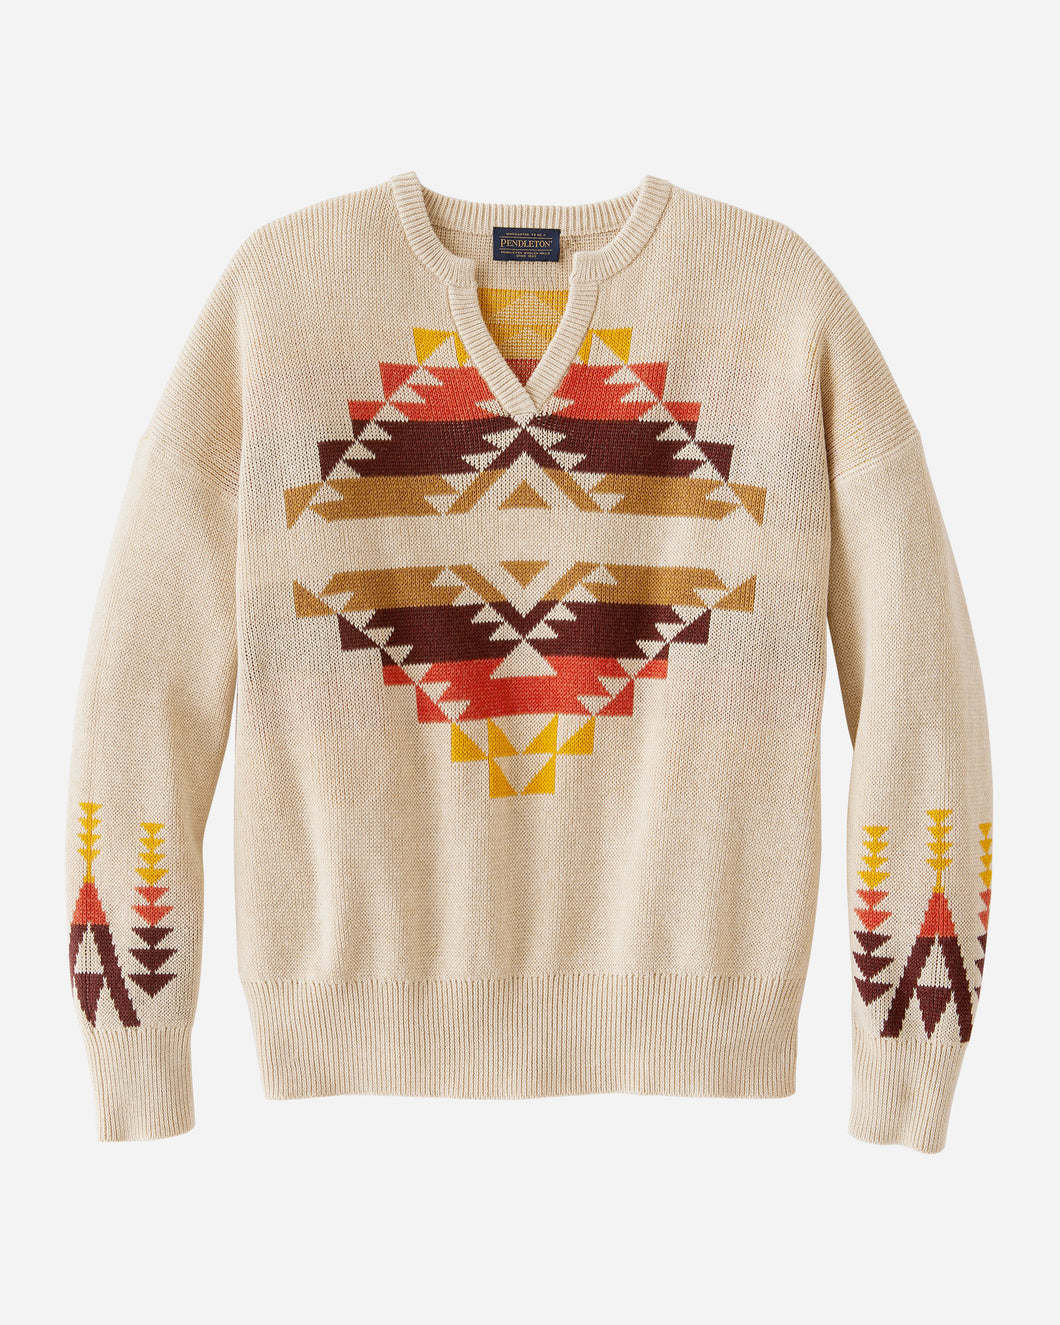 Pendleton Tan Graphic Cotton Sweater